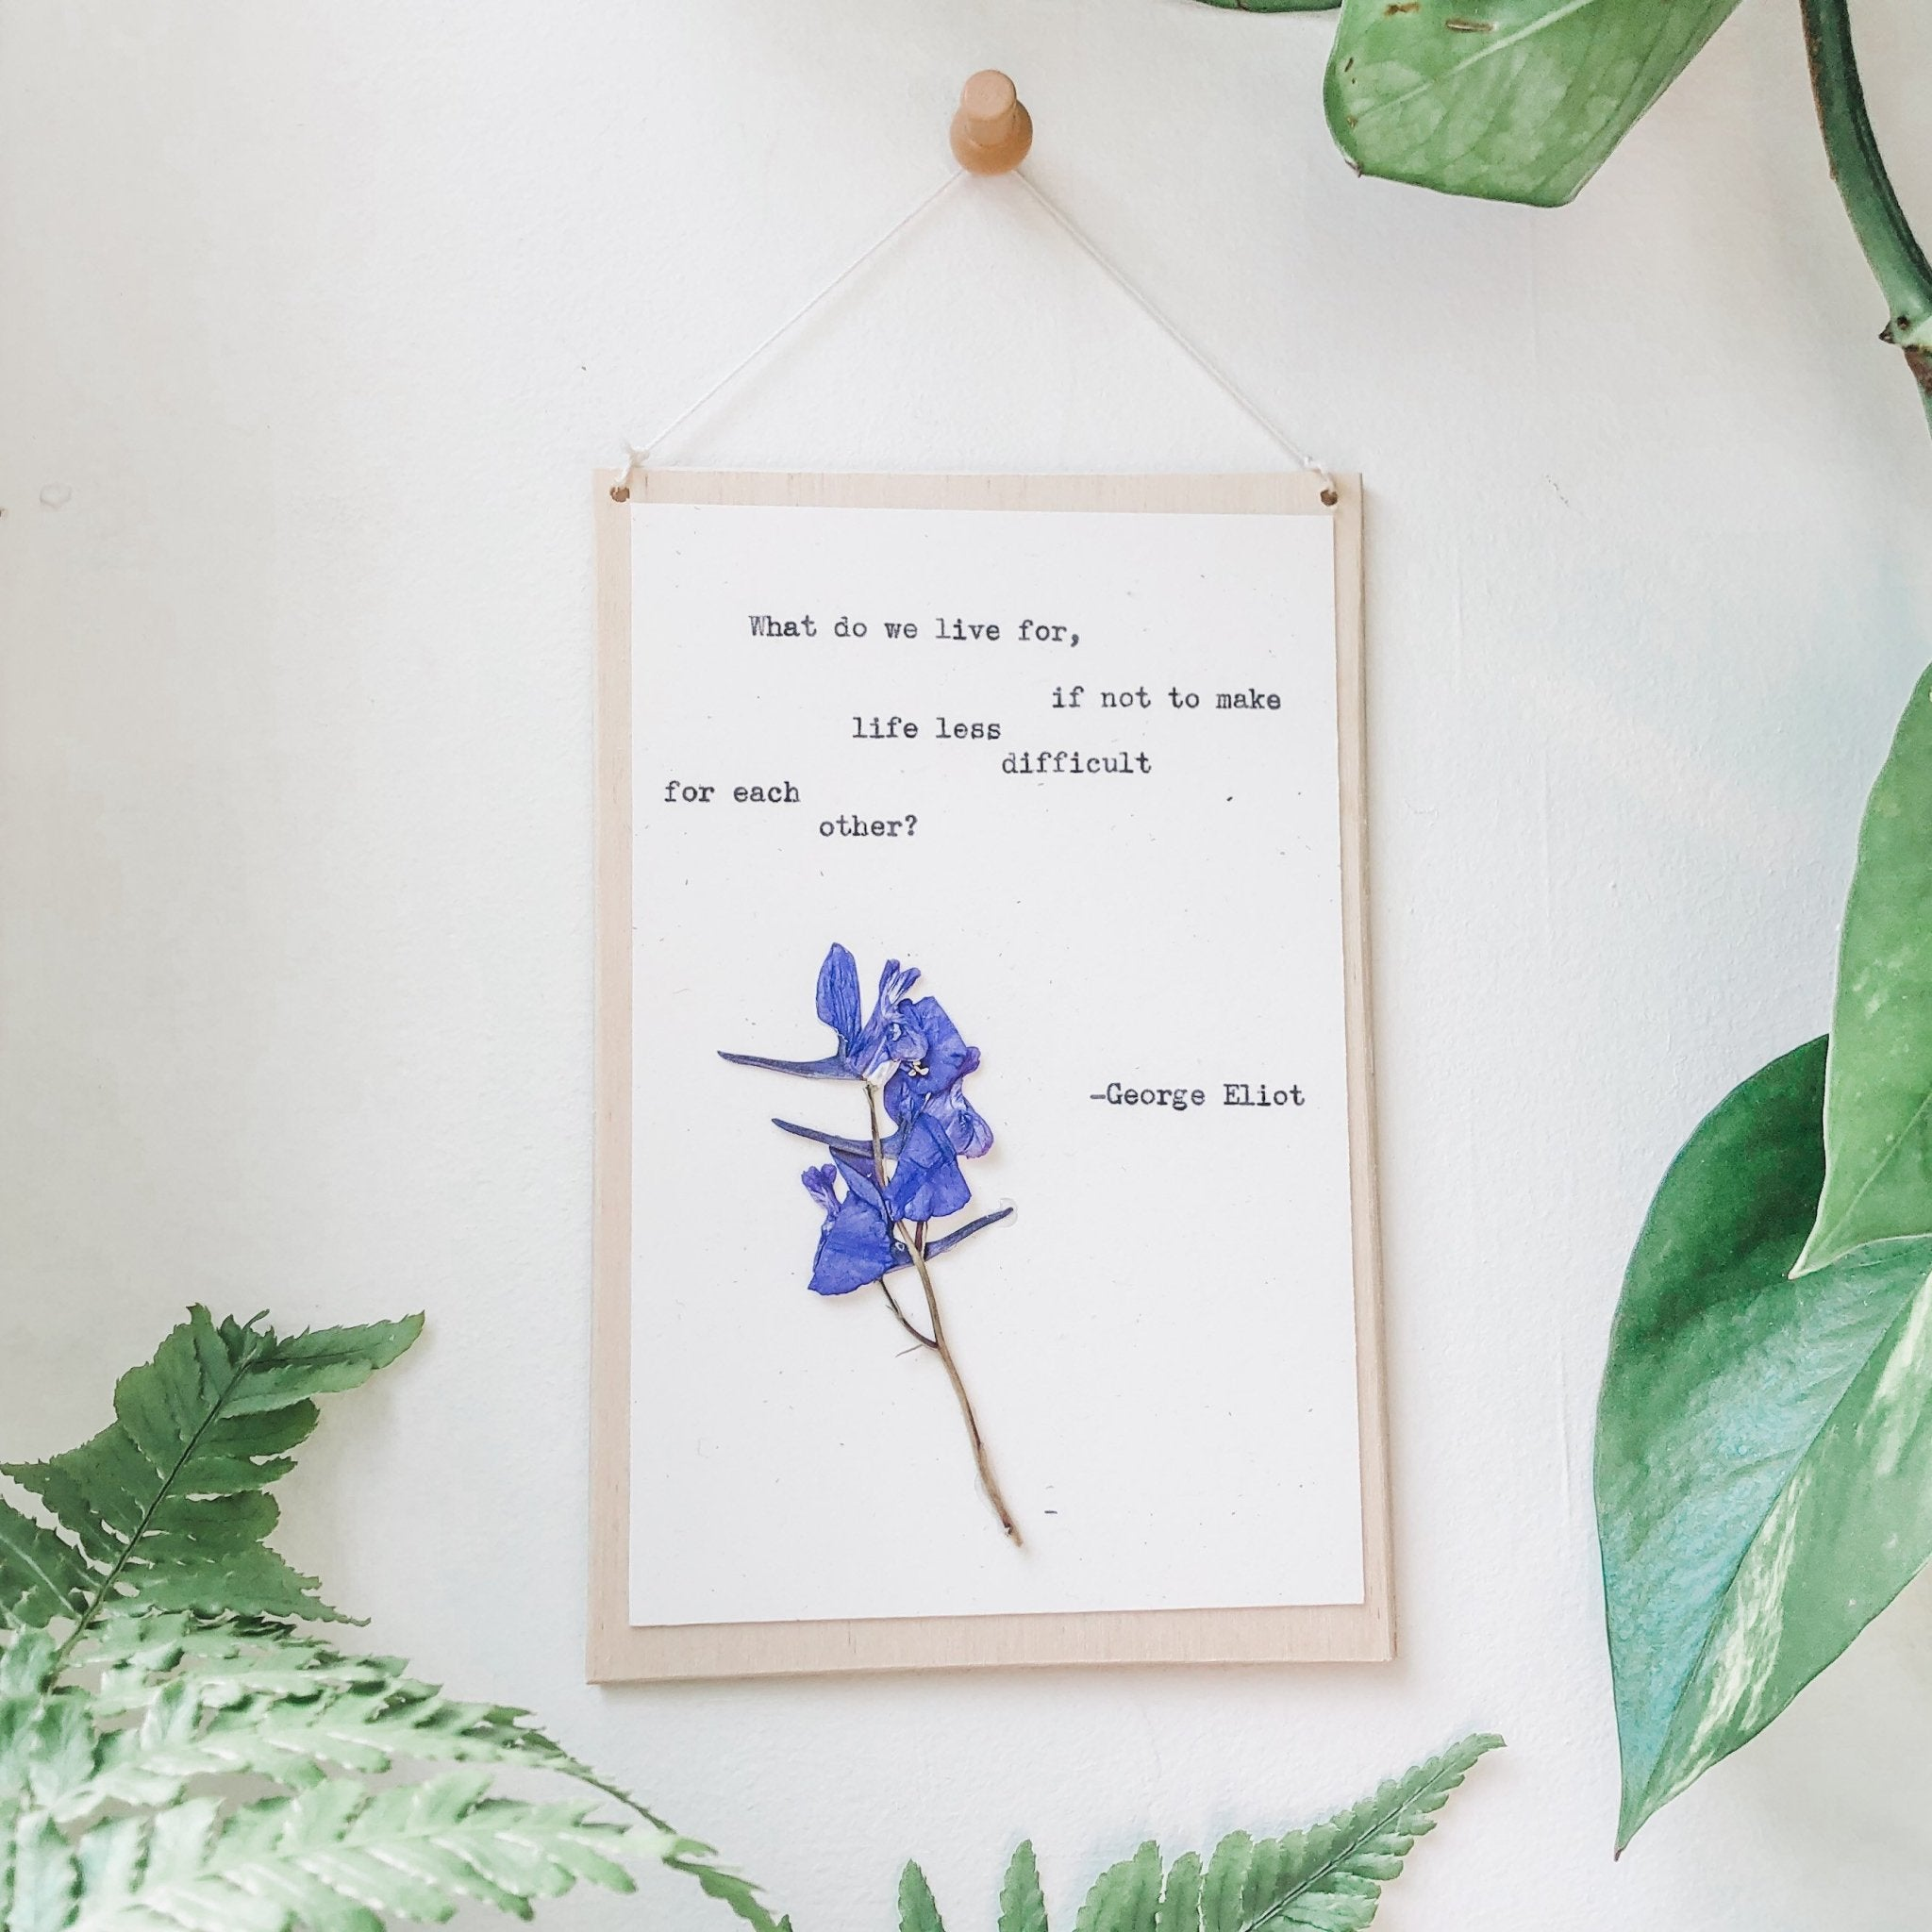 george eliot, make life less difficult for each other quote typed in typewriter font on white paper, mounted on birch wood and paired with a pressed flower. handmade décor by flora & phrase